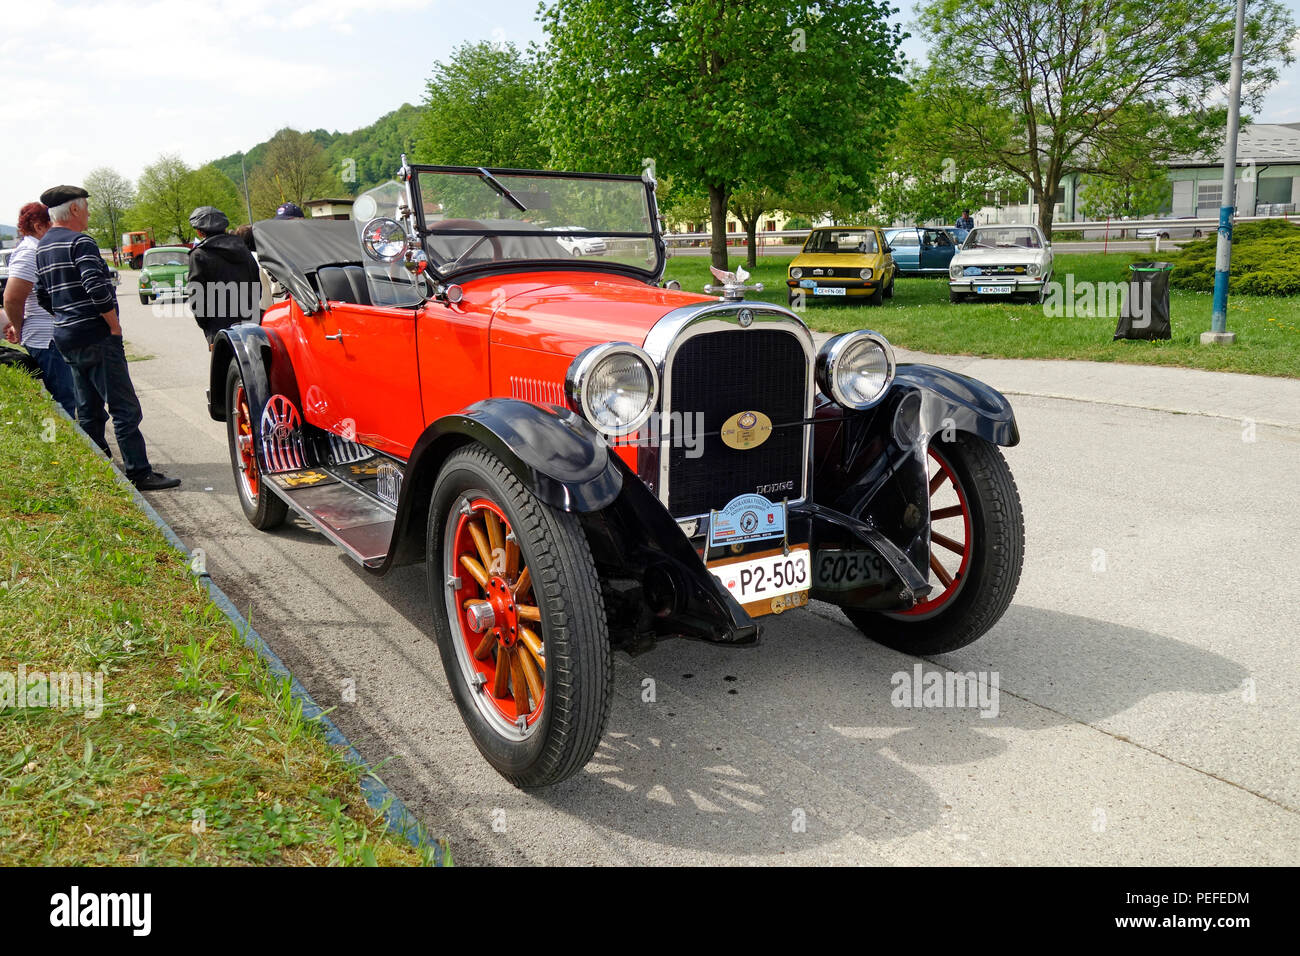 'Roadster' car model manufactured 1924 by Dodge Brothers Company.Exhibited in Sentjur, Slovenia. - Stock Image